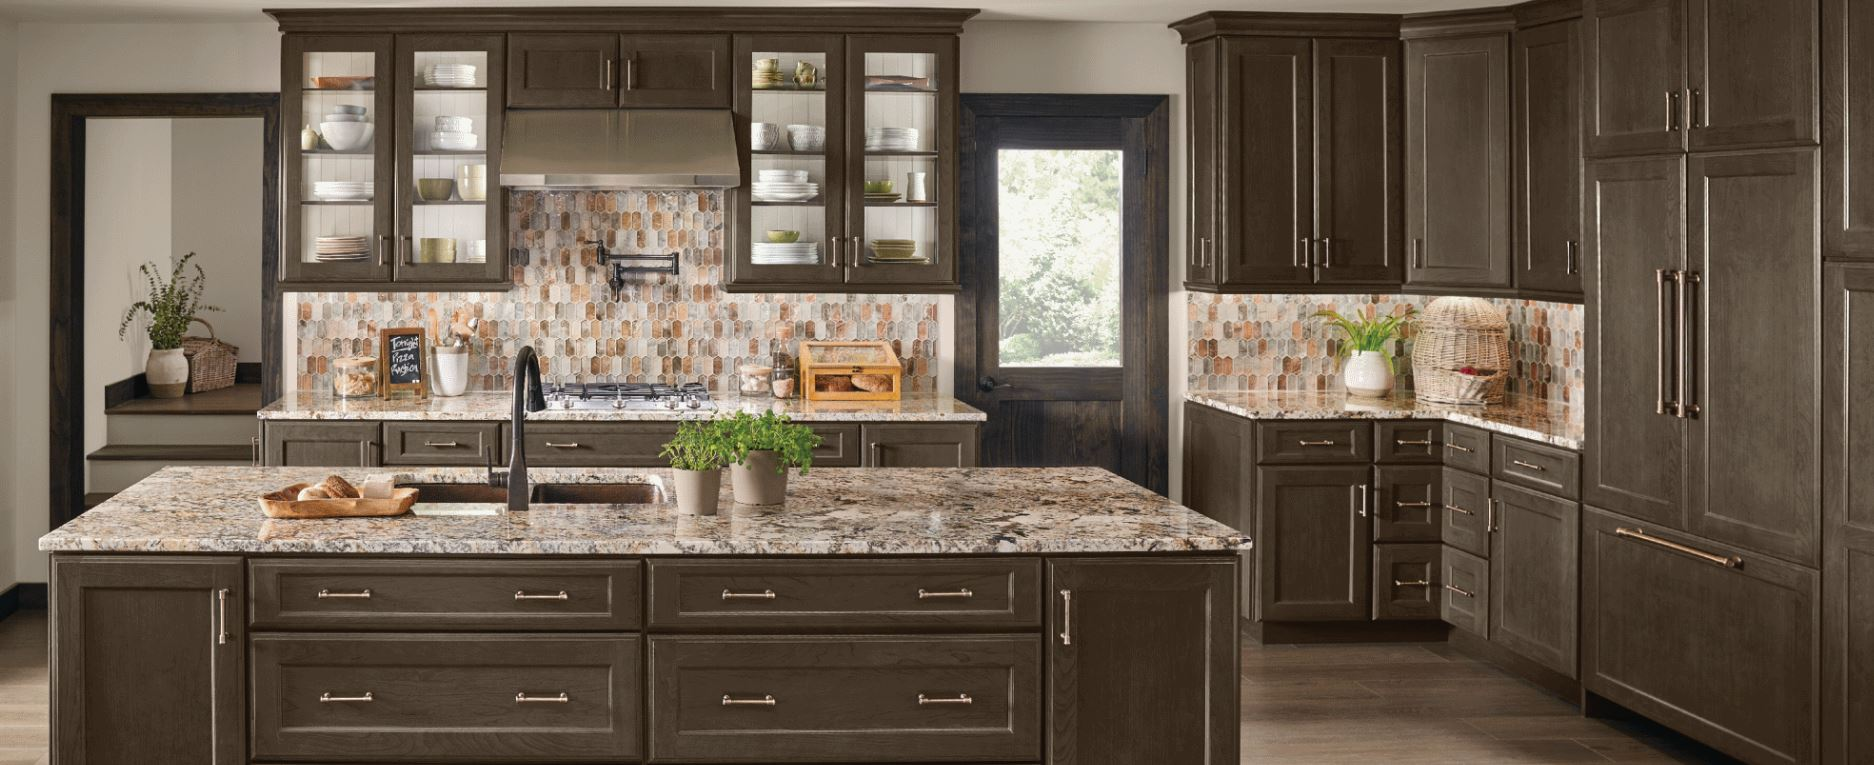 Cleveland Akron Kitchen Cabinets | Lumberjack\'s Kitchens & Baths